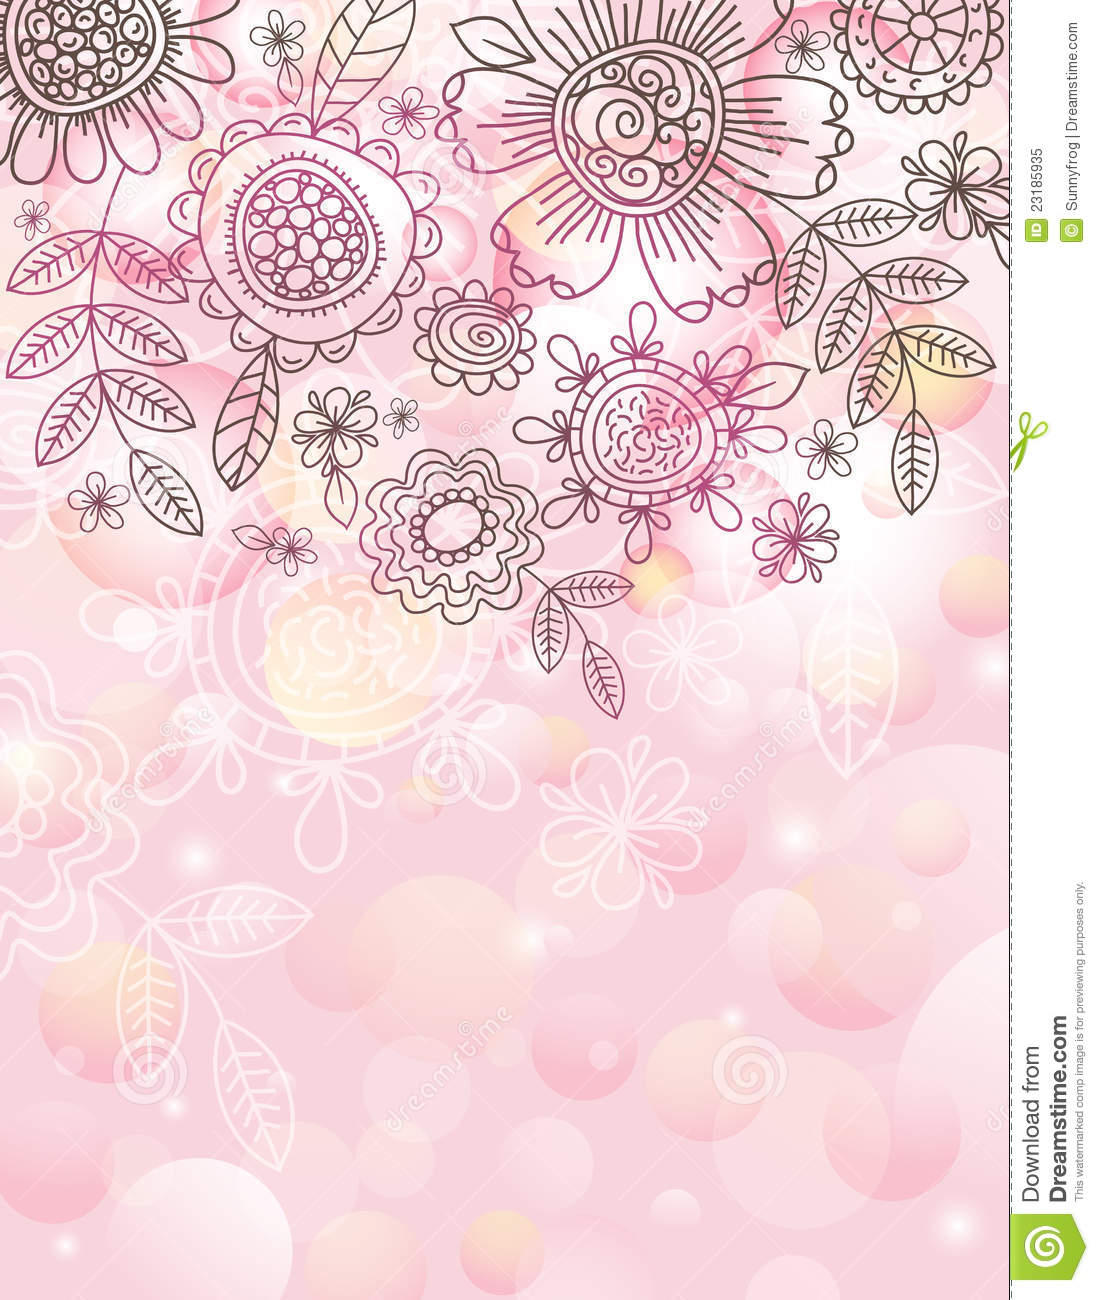 Pink background with hand draw flowers